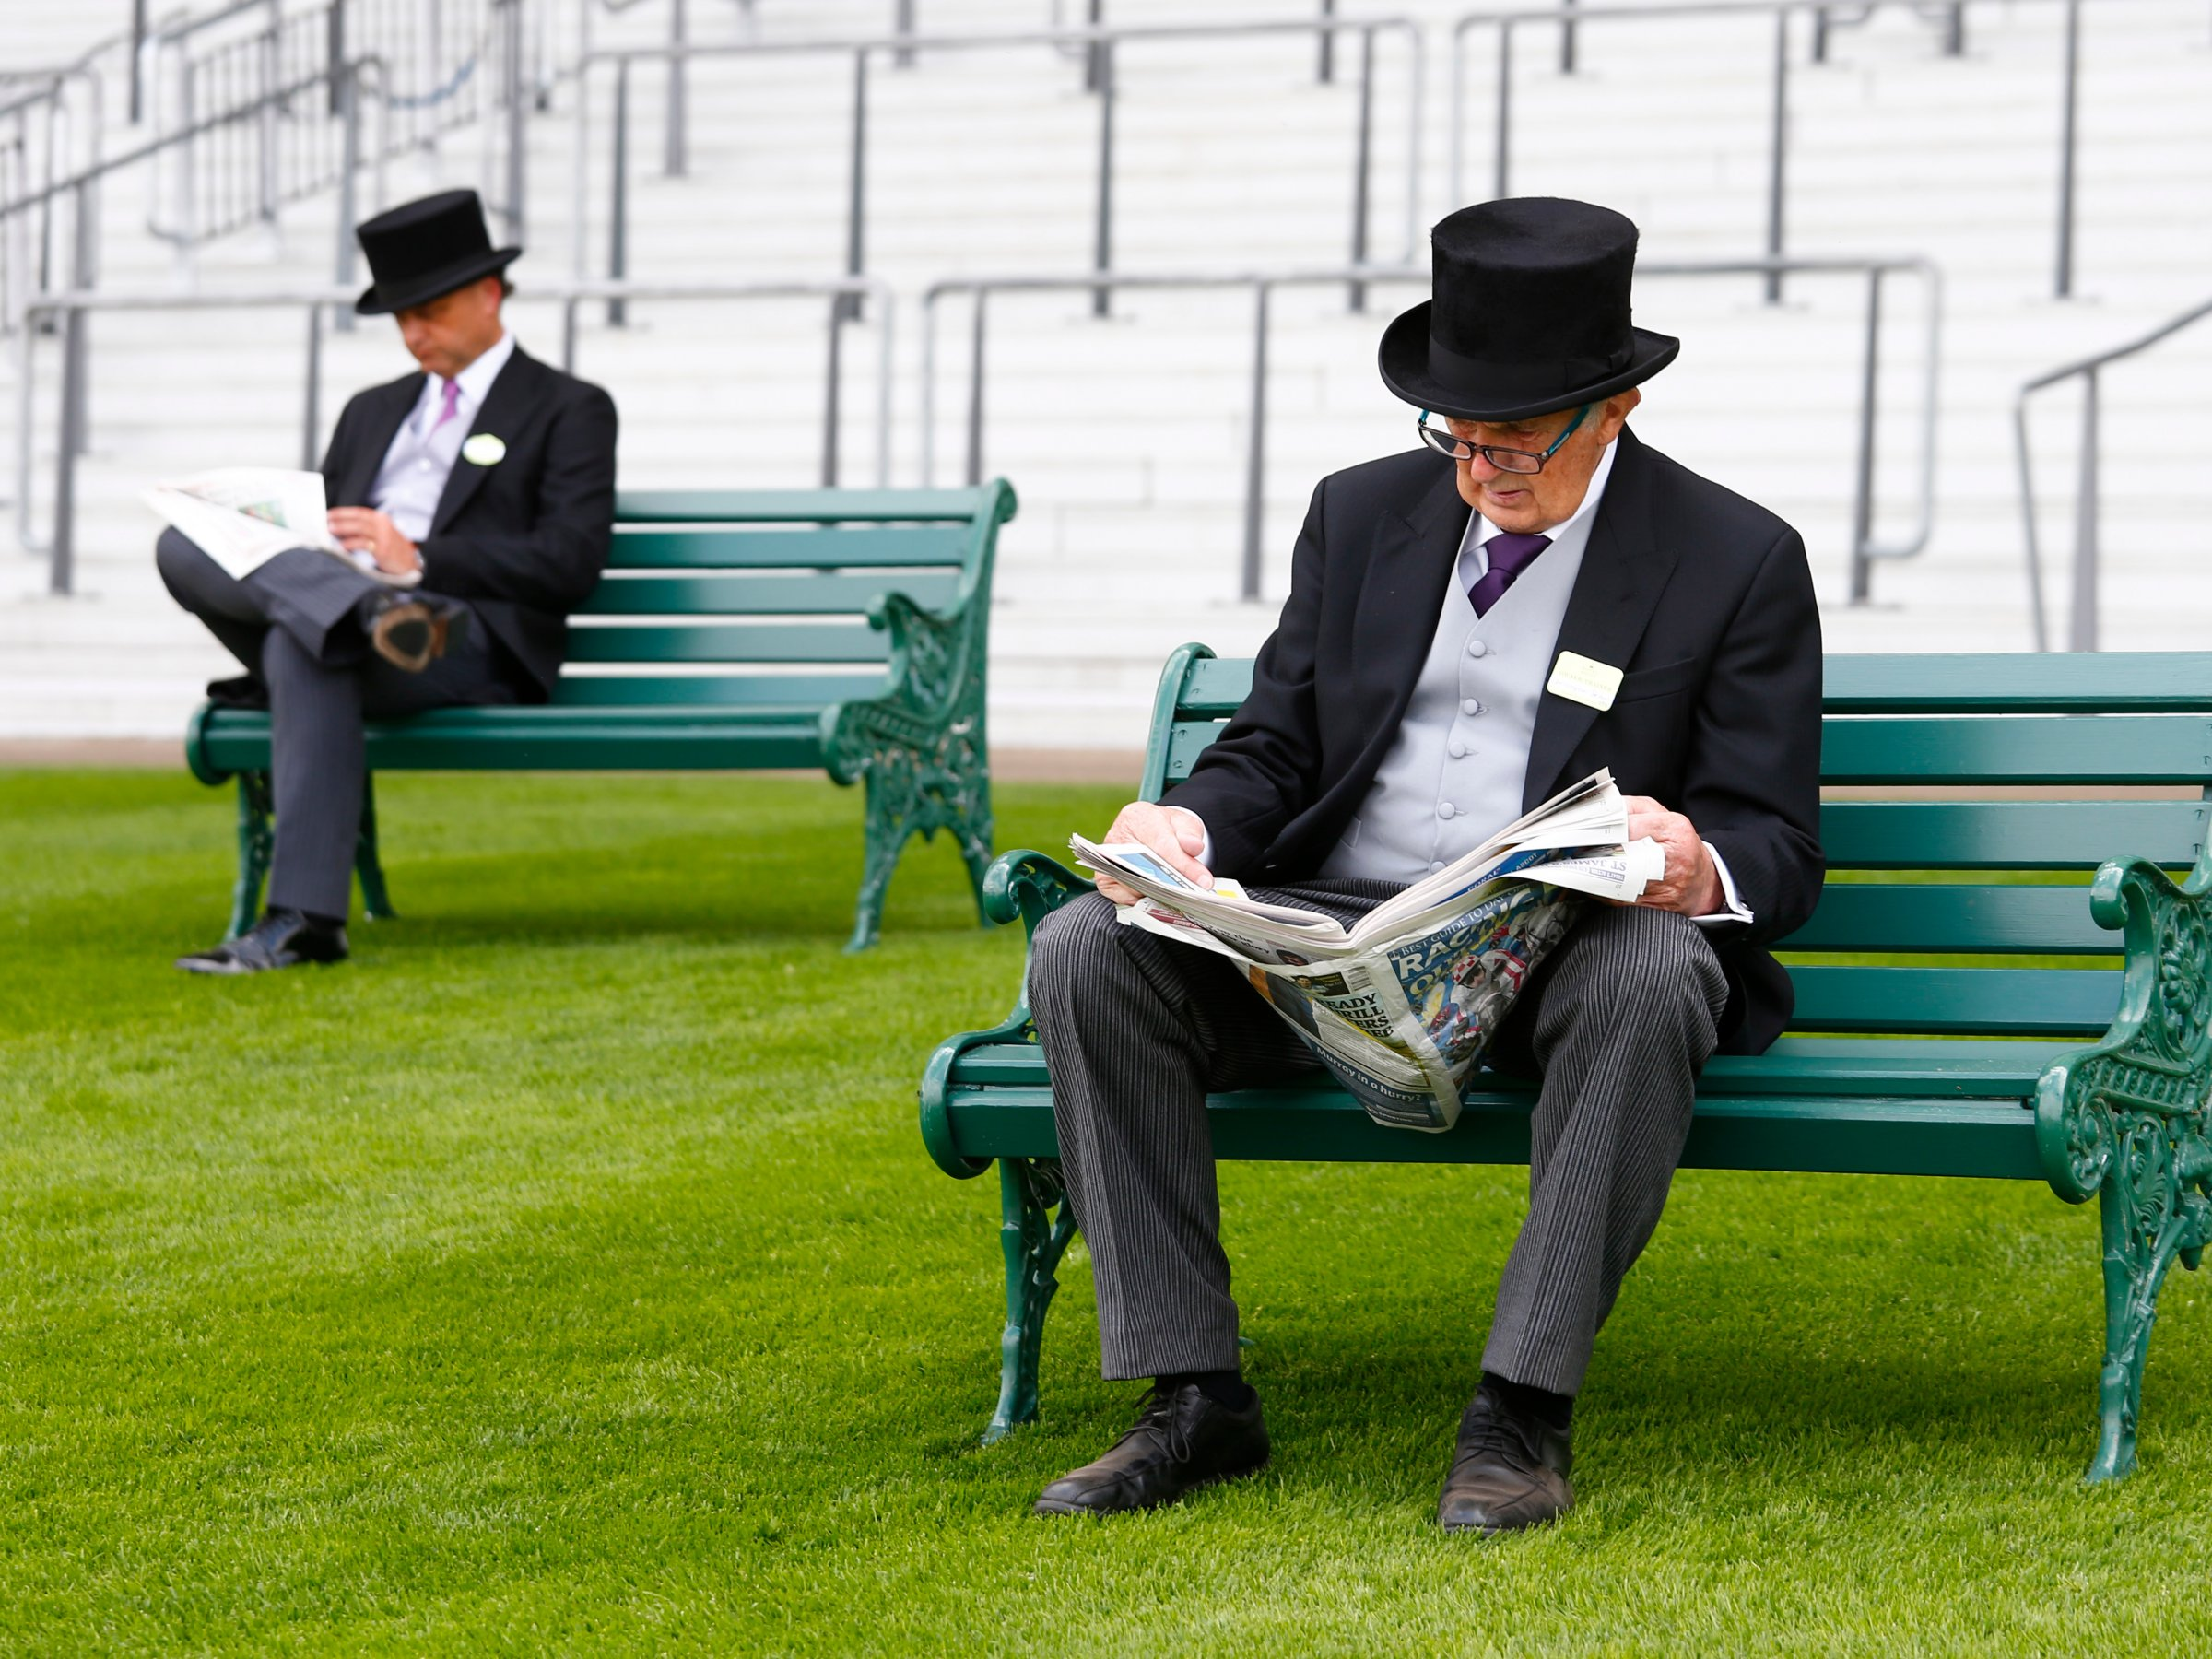 wealthy individuals consider old white men the maximum